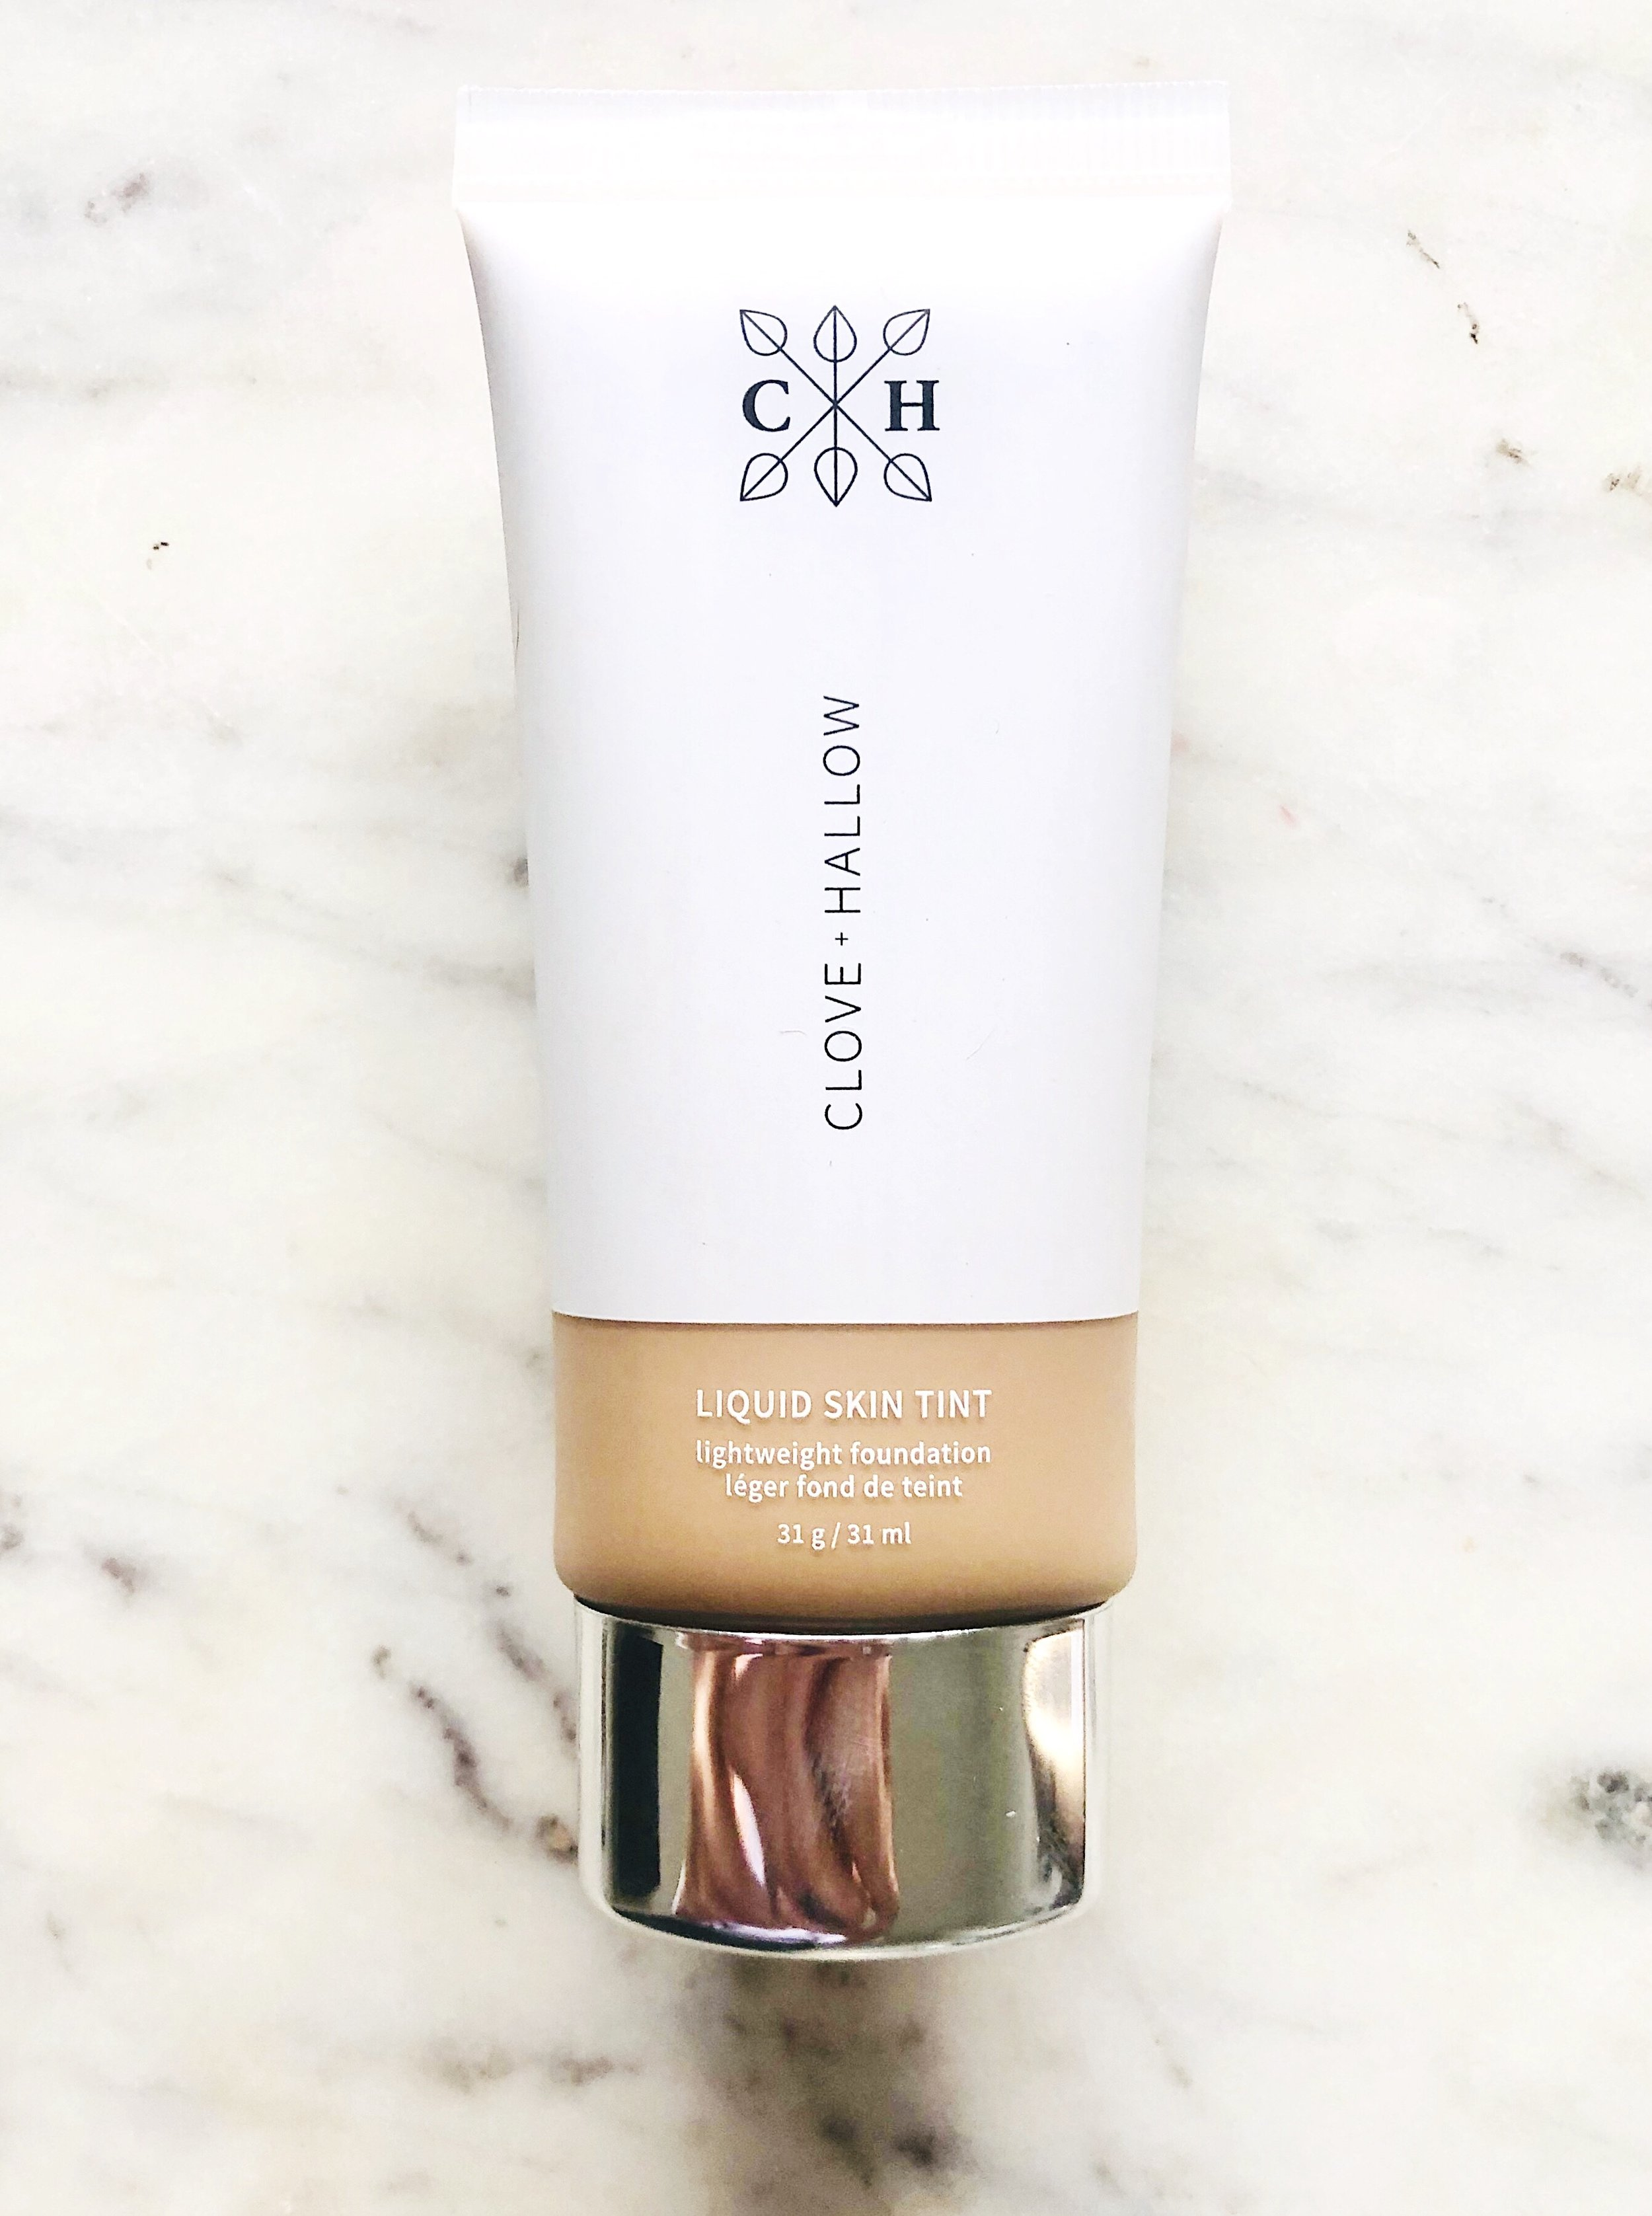 "Clove + Hallow Liquid Skin Tint- $26.00 - Here's the quick SCORECARD breakdown. Each question is rated on a scale of 1 to 5, 5 being the best:1. How do the ingredients look (EWG.org ratings)?- 3: Lots of ingredients at ""2"" and ""3."" Three of primary concern: Dimethicone, Potassium Sorbate, and Sodium Benzoate, which could potentially be irritating and also not eco-friendly (Dimethicone specifically).2. How is coverage?- 5: Nailed it on performance here! The brand says you will get a ""demi-matte, lightweight medium coverage,"" and they deliver on their promise. Skin looks like skin!3. Does it last?- 5: Oh yea. This was super impressive. I tried it with and without setting. In both instances, the product still looked fresh at the end of the day.4. Is it non-irritating?- 3: Review the ingredients list below. Be informed, not afraid! Definitely dig a bit further if you have sensitive skin!5. Does it build and blend well?- 5: Again, nailed it on coverage and overall performance. I wore this with several layers and saw no streaking of odd settling into pores or fine lines.6. Is the shade range inclusive?- 4: 12 shades is respectable!7. How conscious is the brand? 3- I'm still waiting to hear back on packaging which, right now, looks and feels like plastic. It is however cruelty-free and vegan, so that's a plus!FINAL SCORE:28/35"